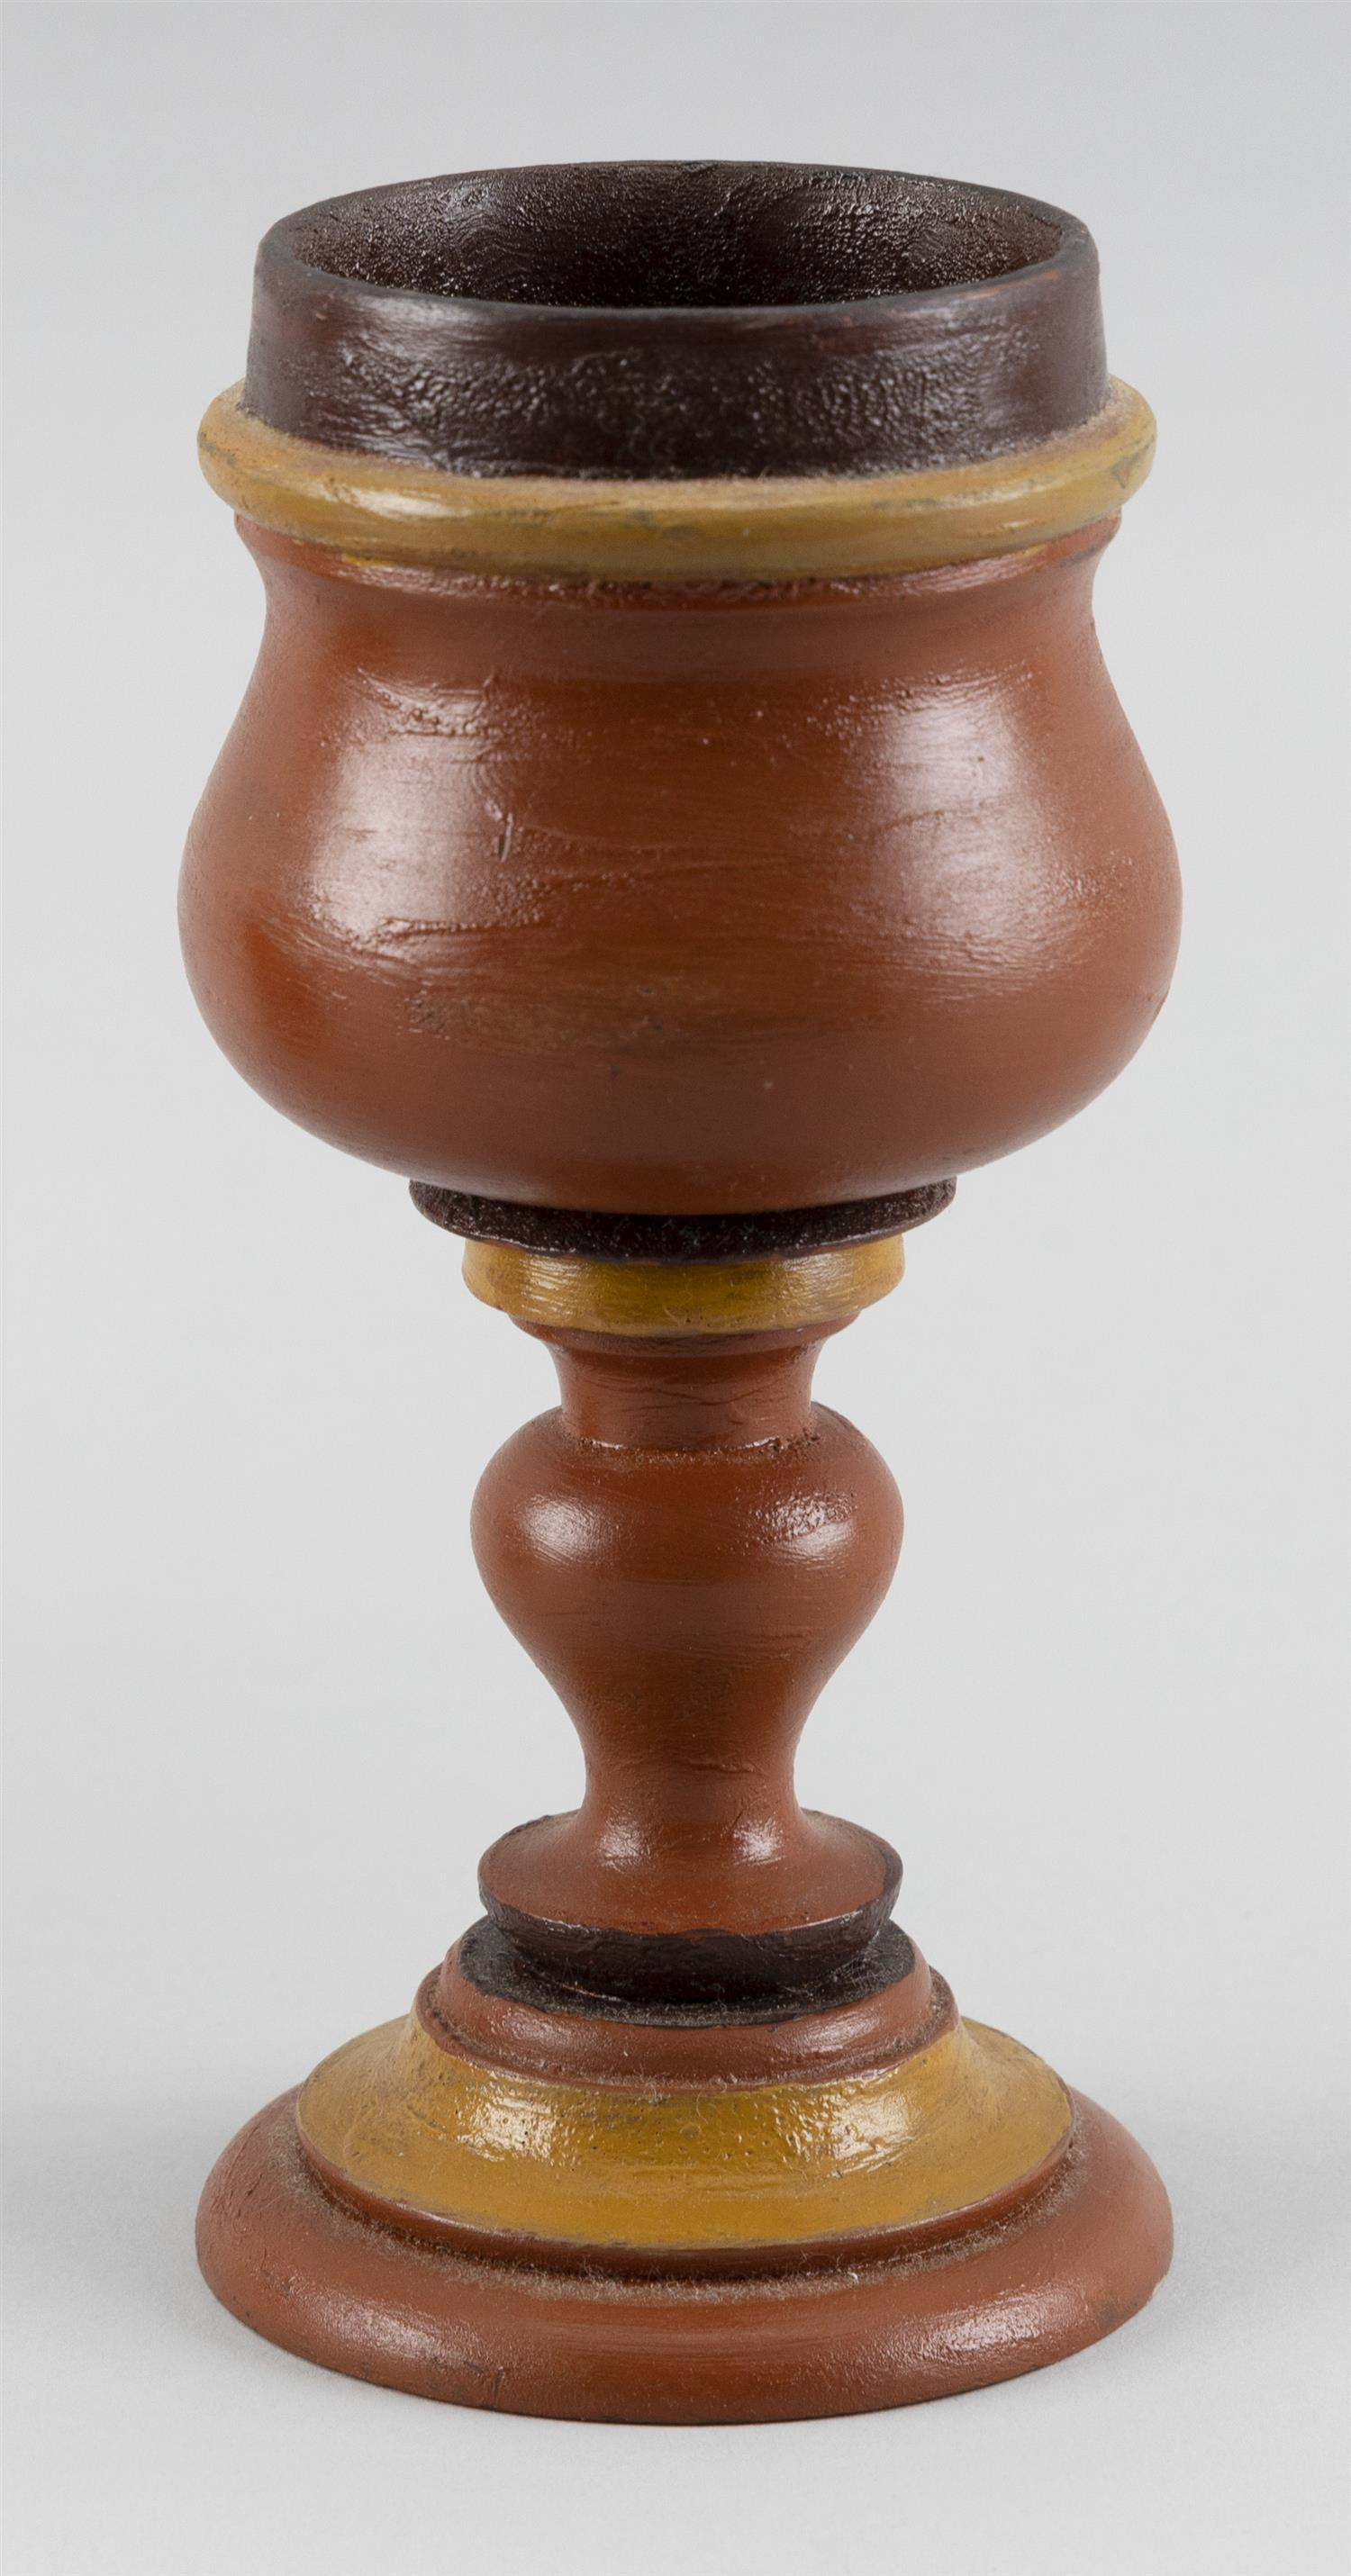 "PAINTED WOODEN GOBLET Painted red, orange and yellow. Height 6.5""."